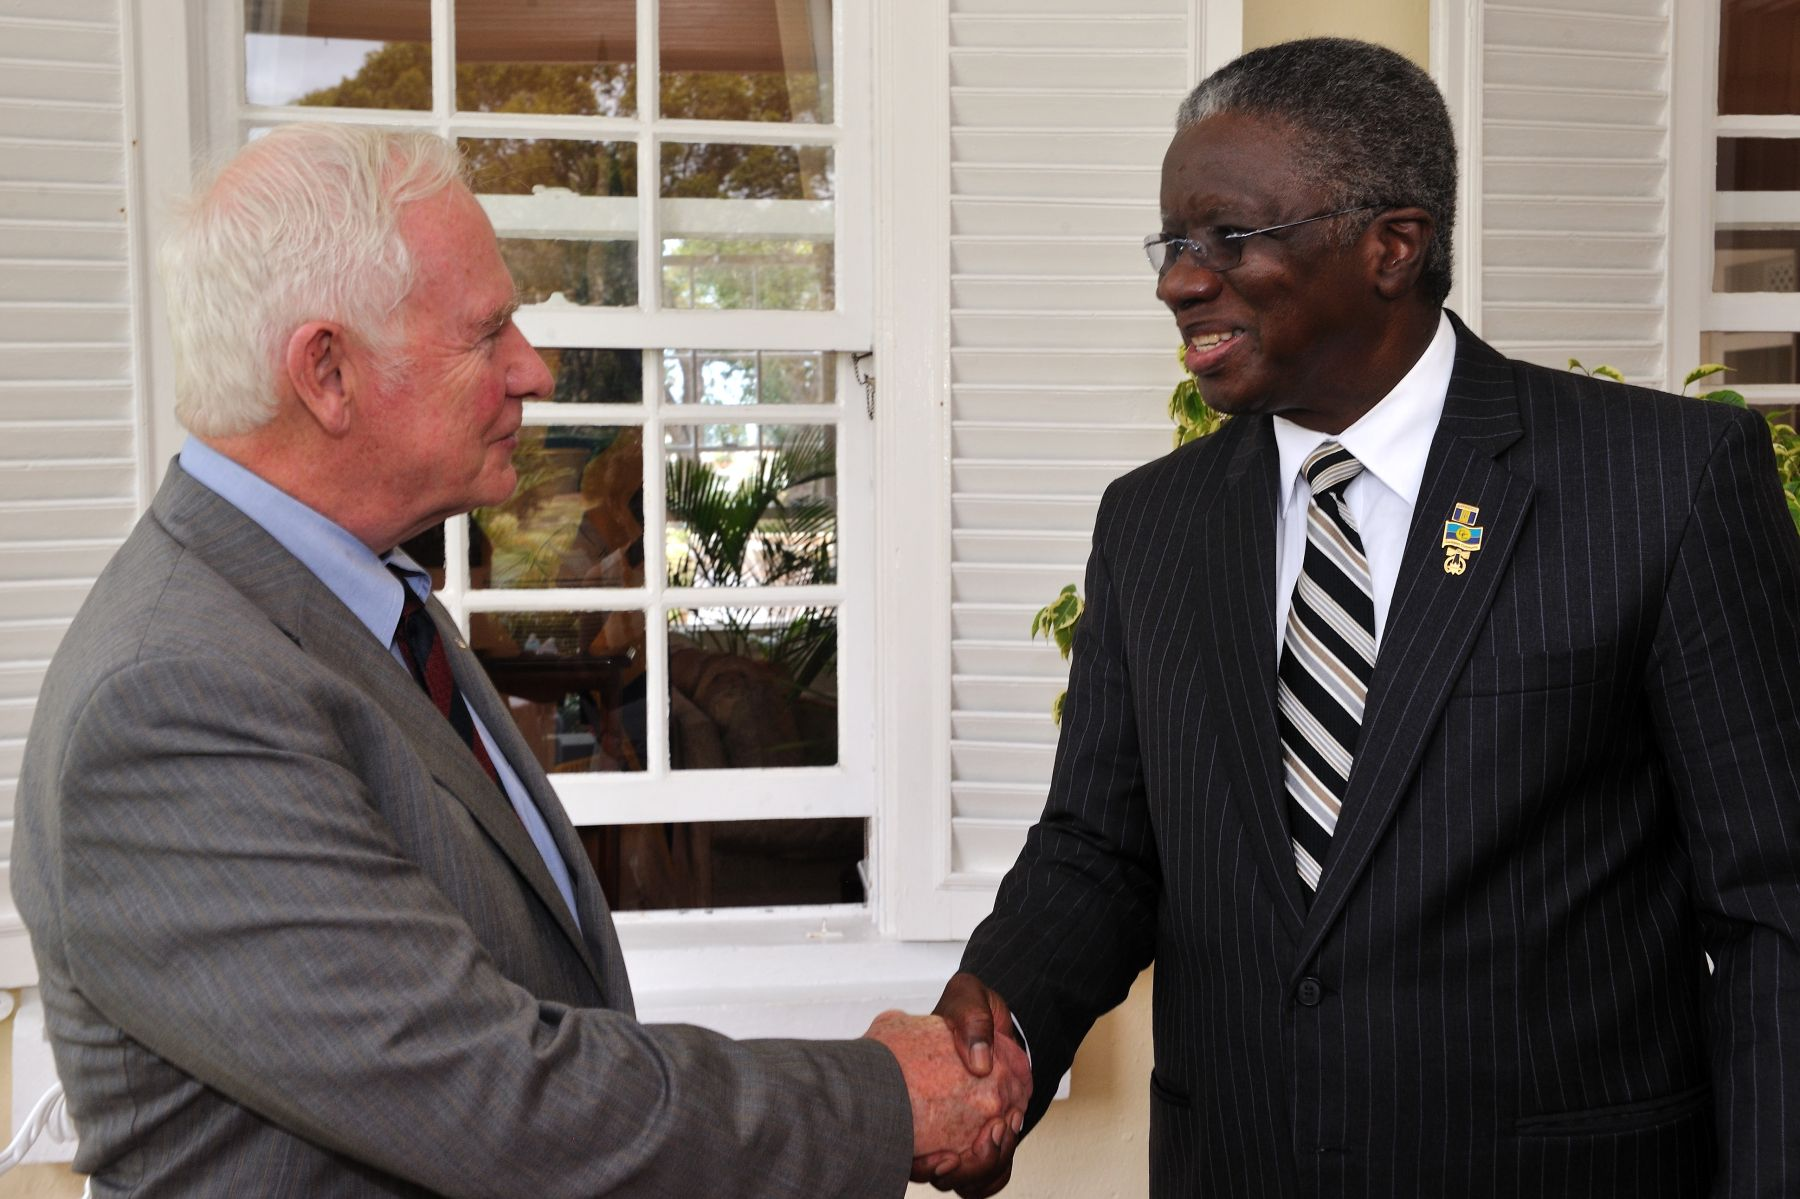 The meeting with the Prime Minister of Barbados took place at Ilaro, in Bridgetown, Barbados.